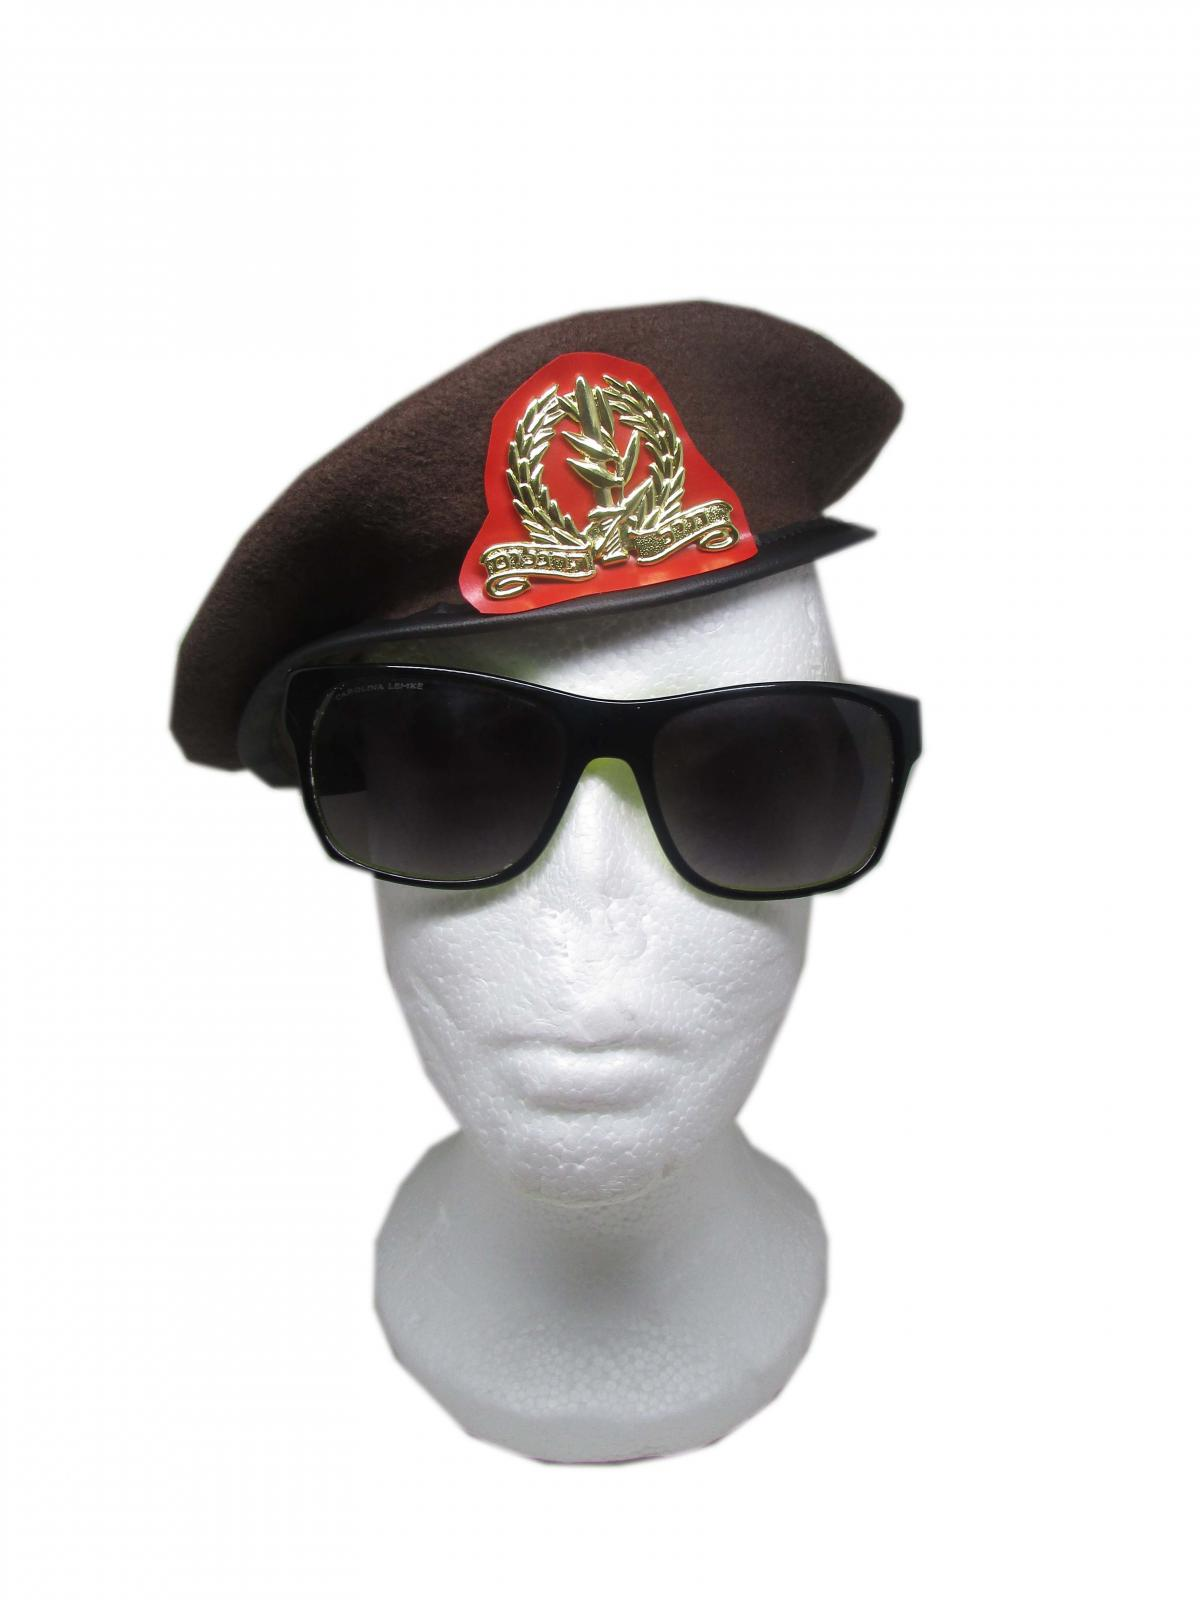 8f6e478be3254 Details about Beret Hat Cap Army Brown Military A Special idf Israeli  Golani Caps Hats Combat